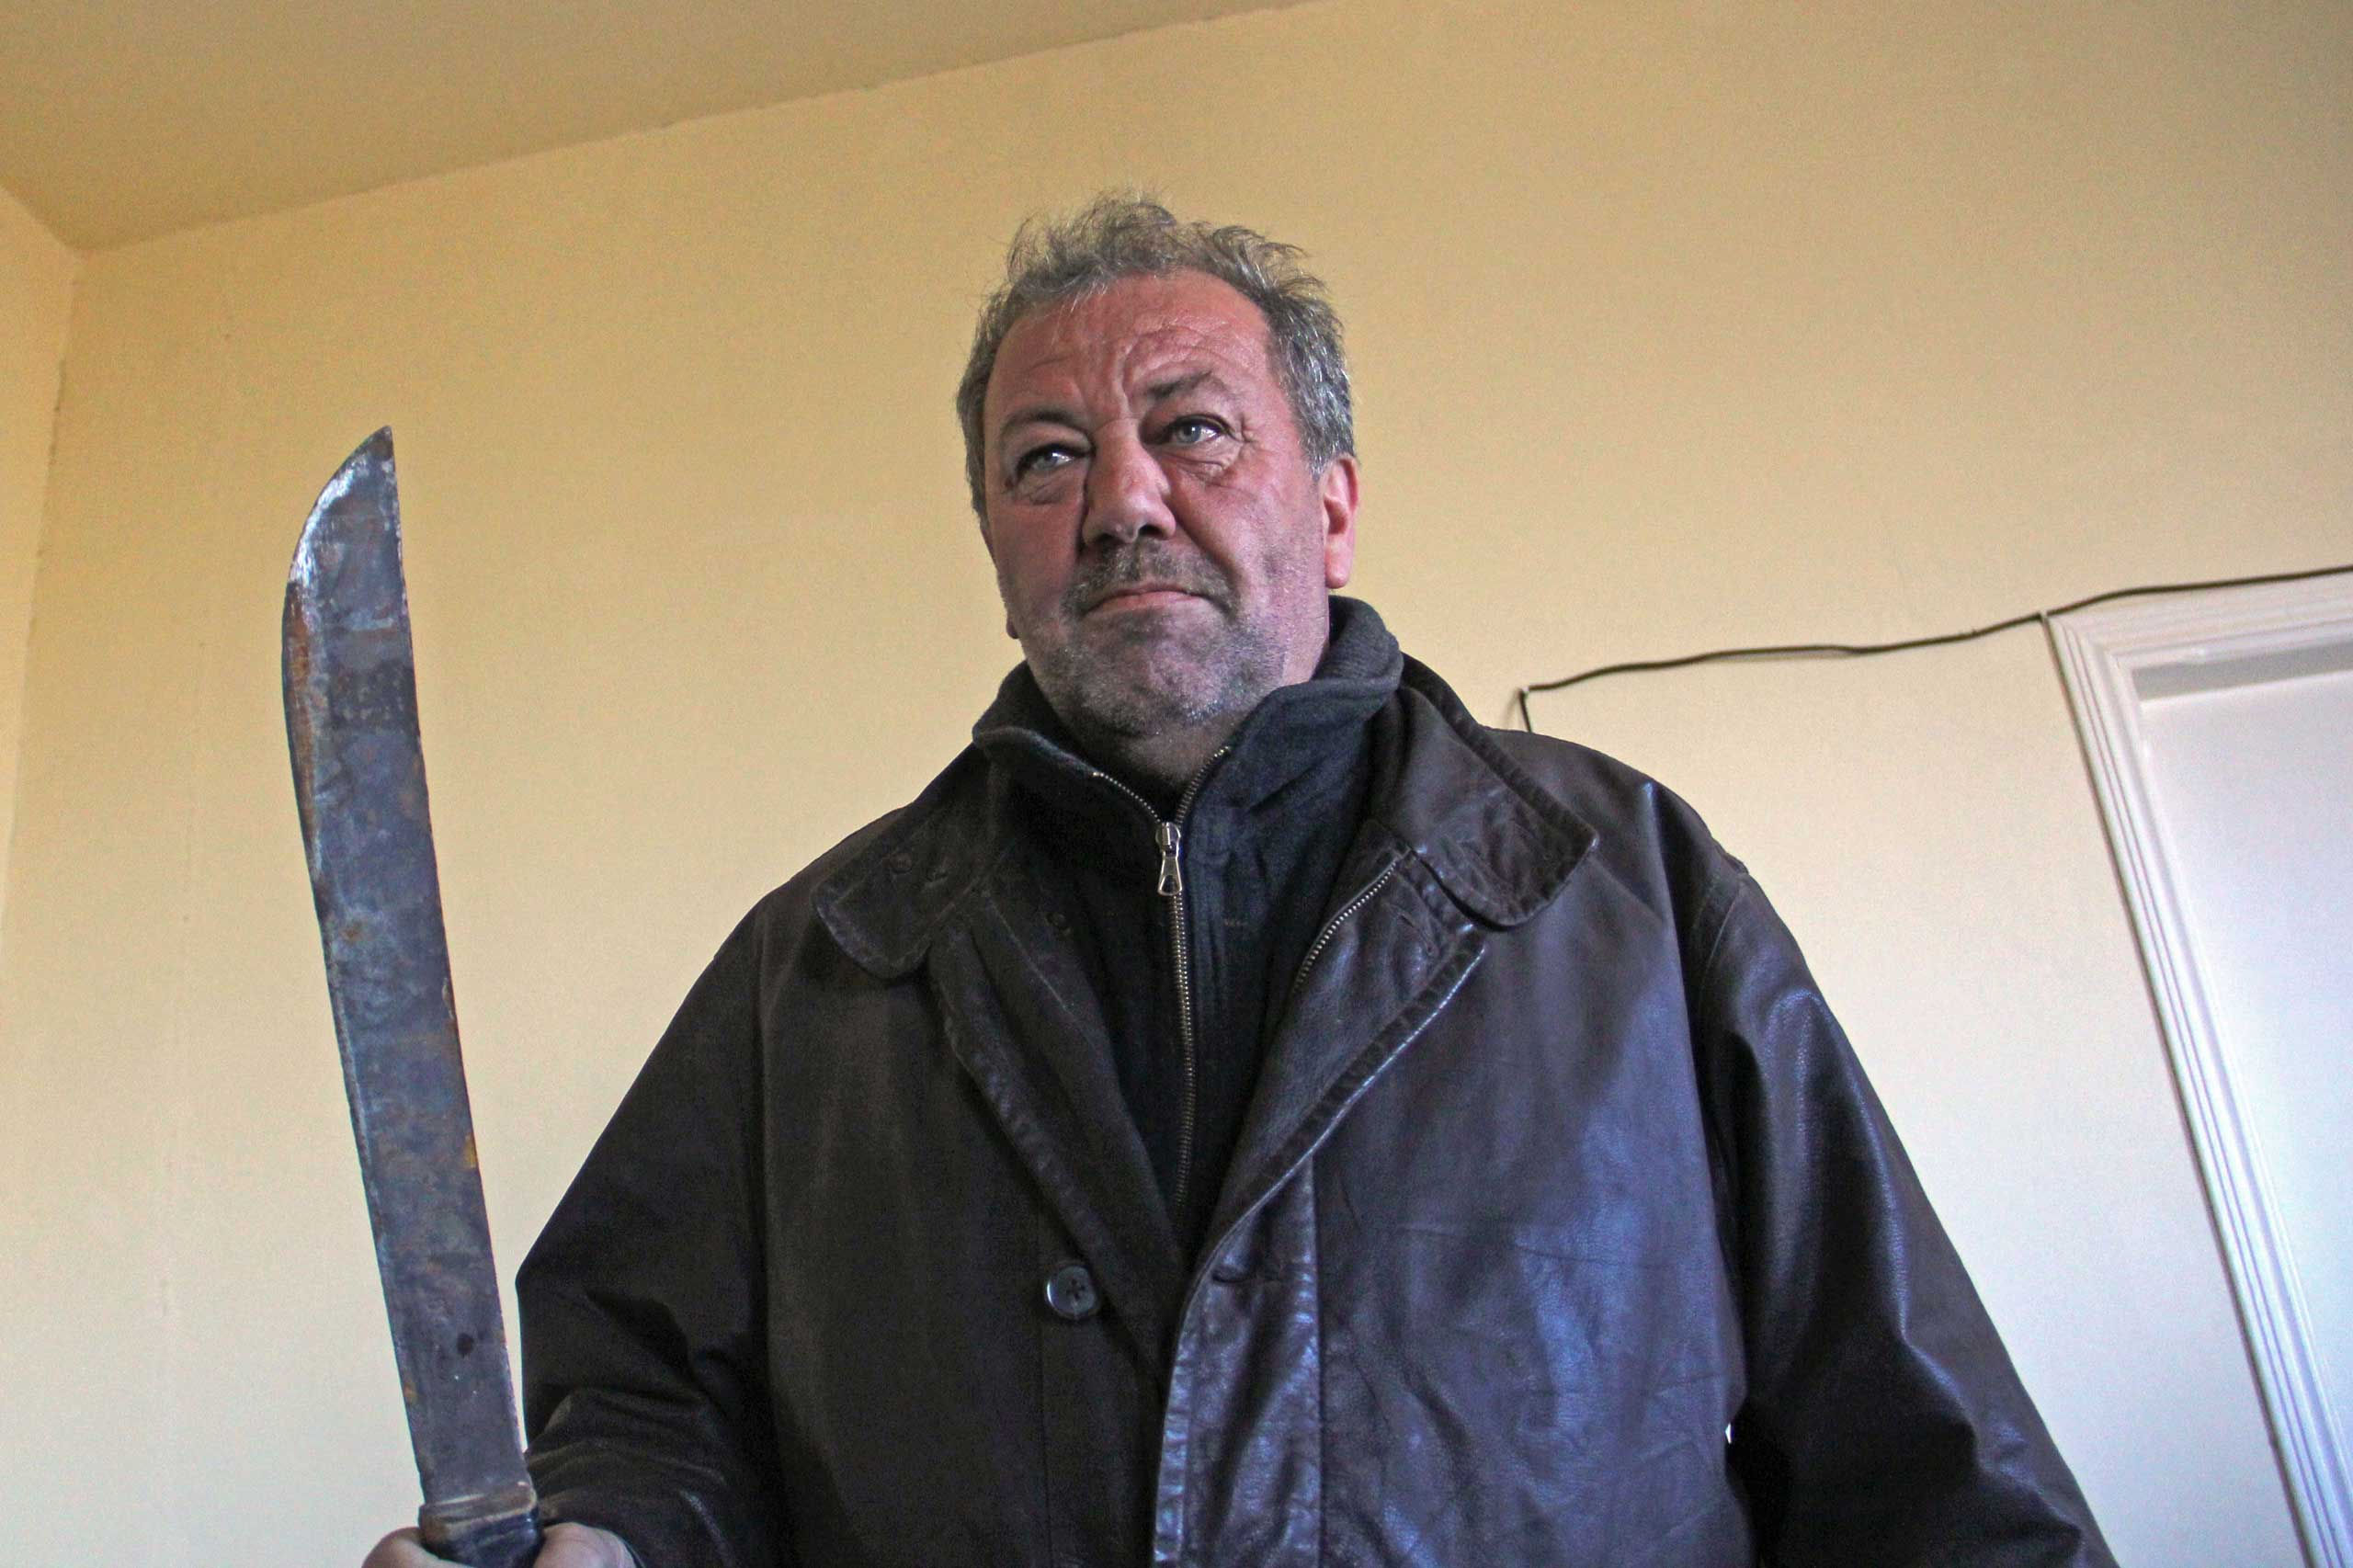 Hash dealer Ali Nasri Shamas holds up a machete he promises to use on jihadis.